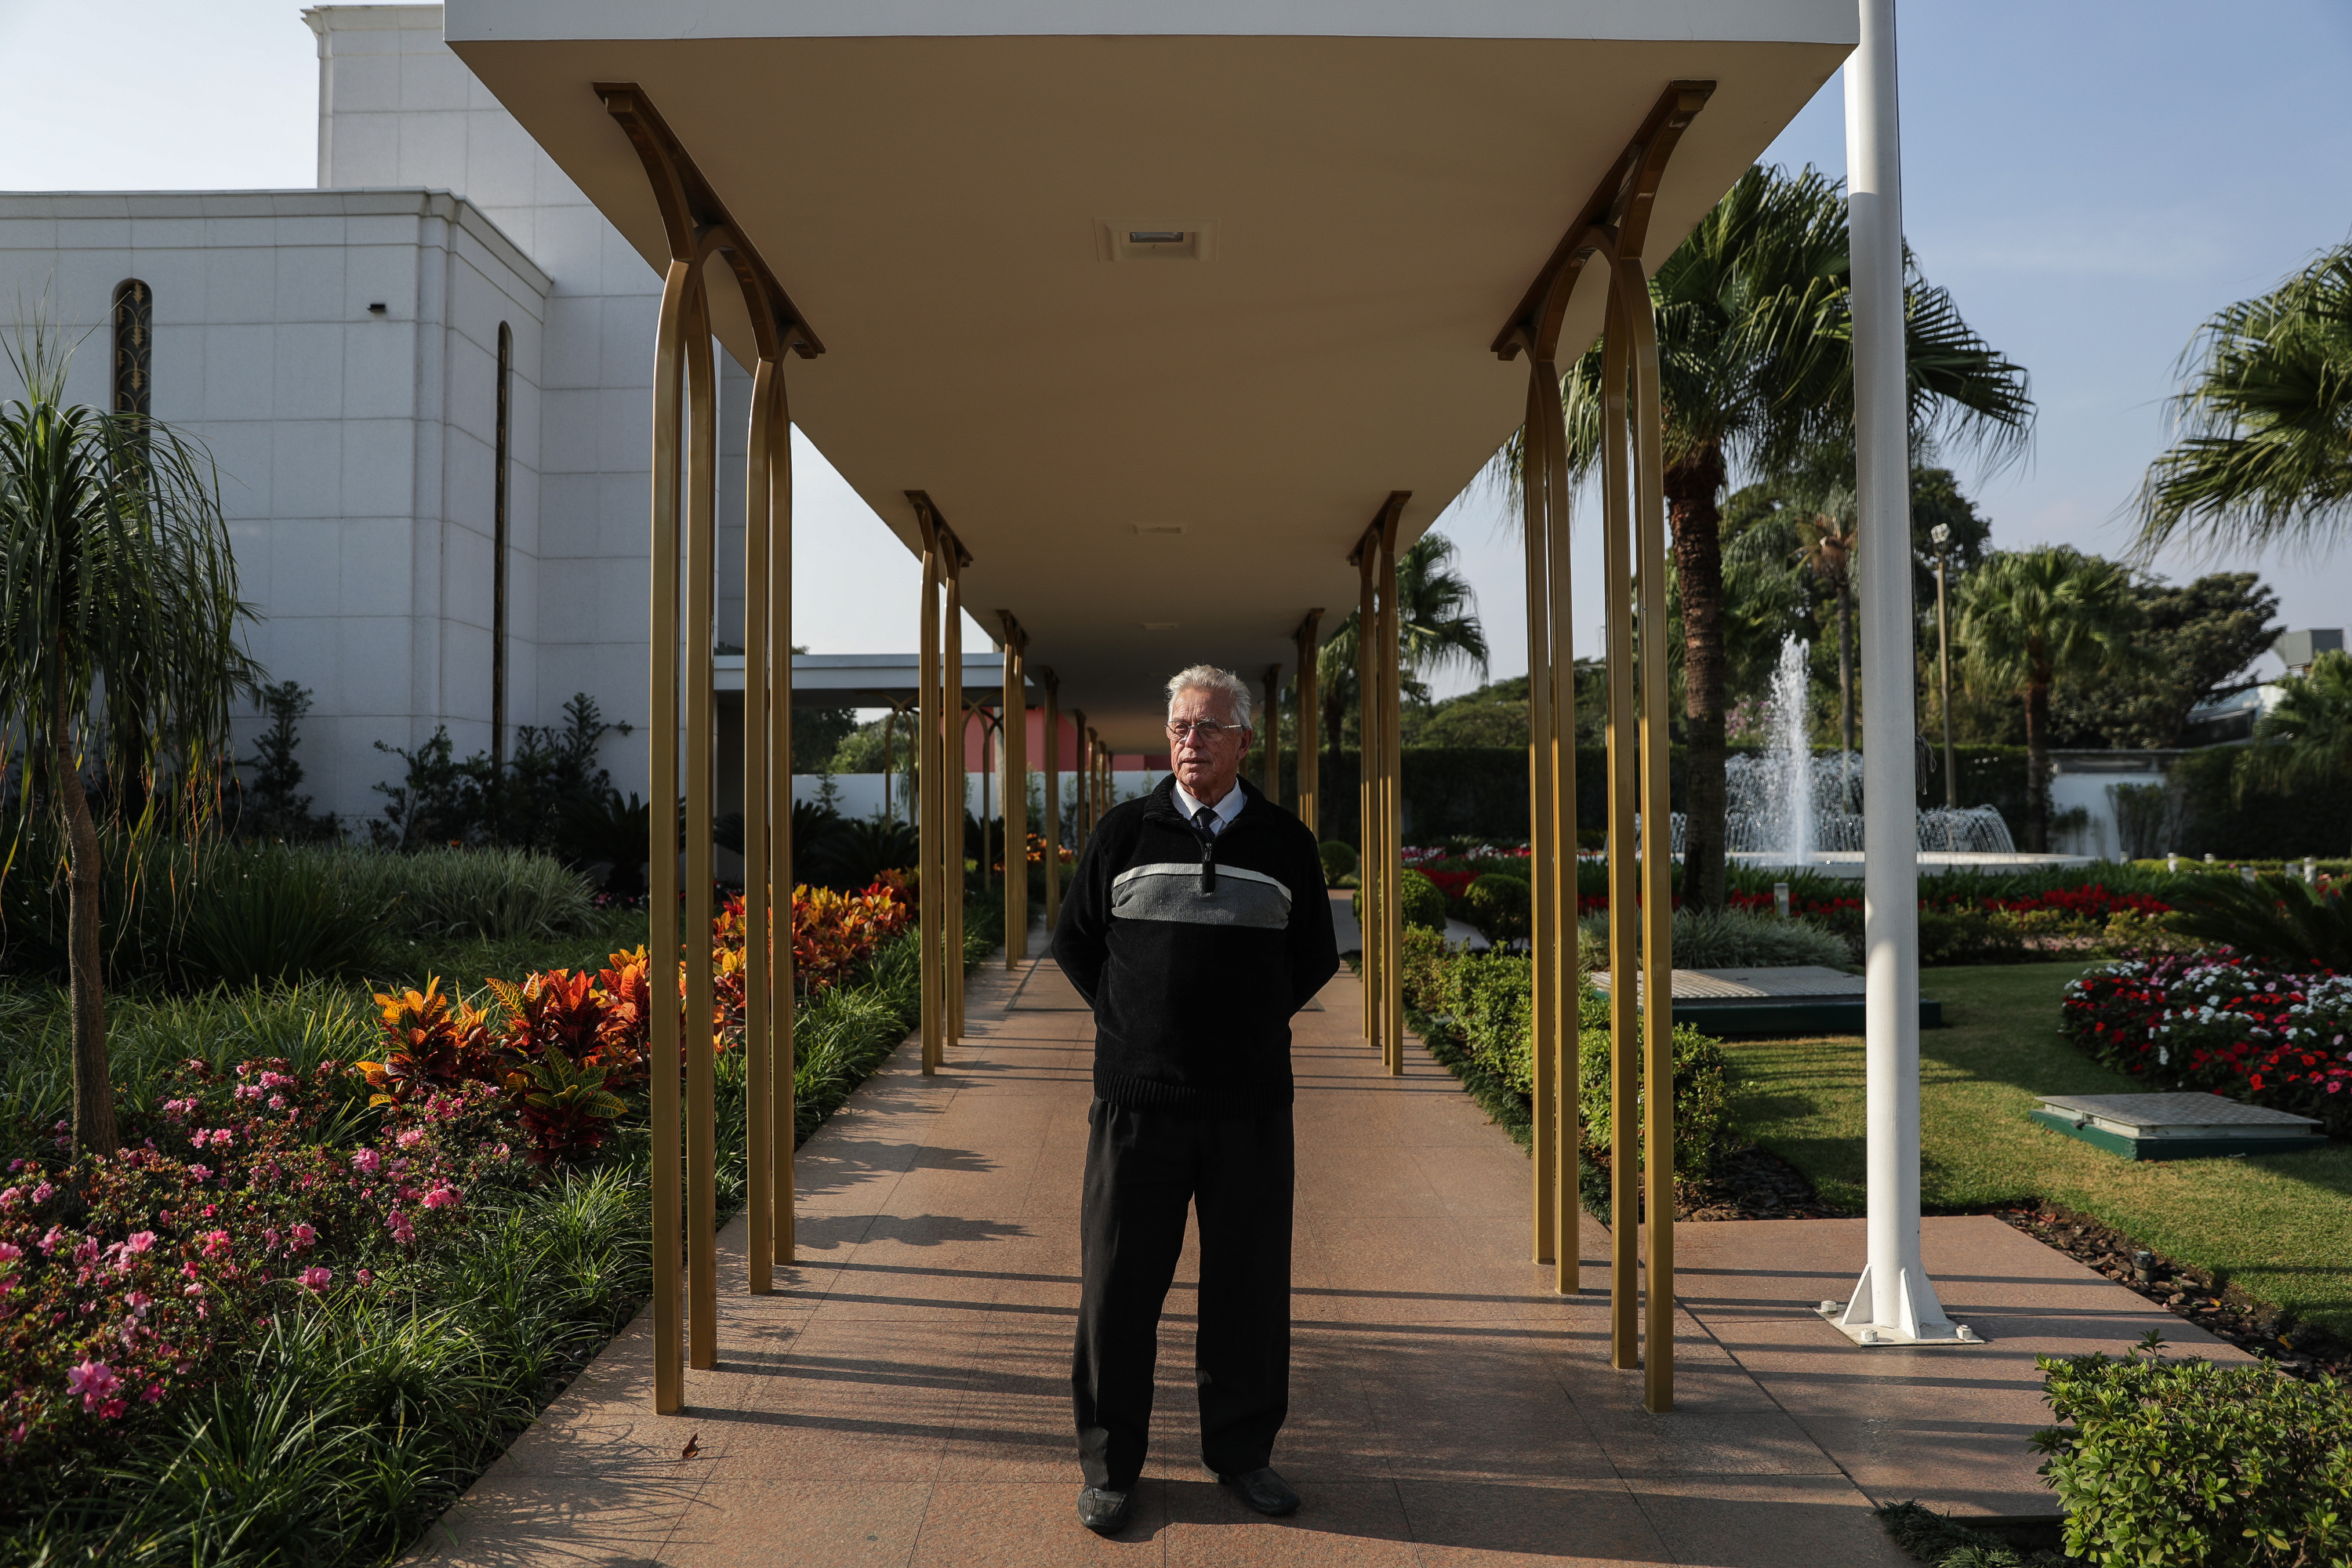 Luiz Pires de Godoy poses for a photograph outside the LDS Church's São Paulo Temple in São Paulo, Brazil on Wednesday, May 23, 2018.